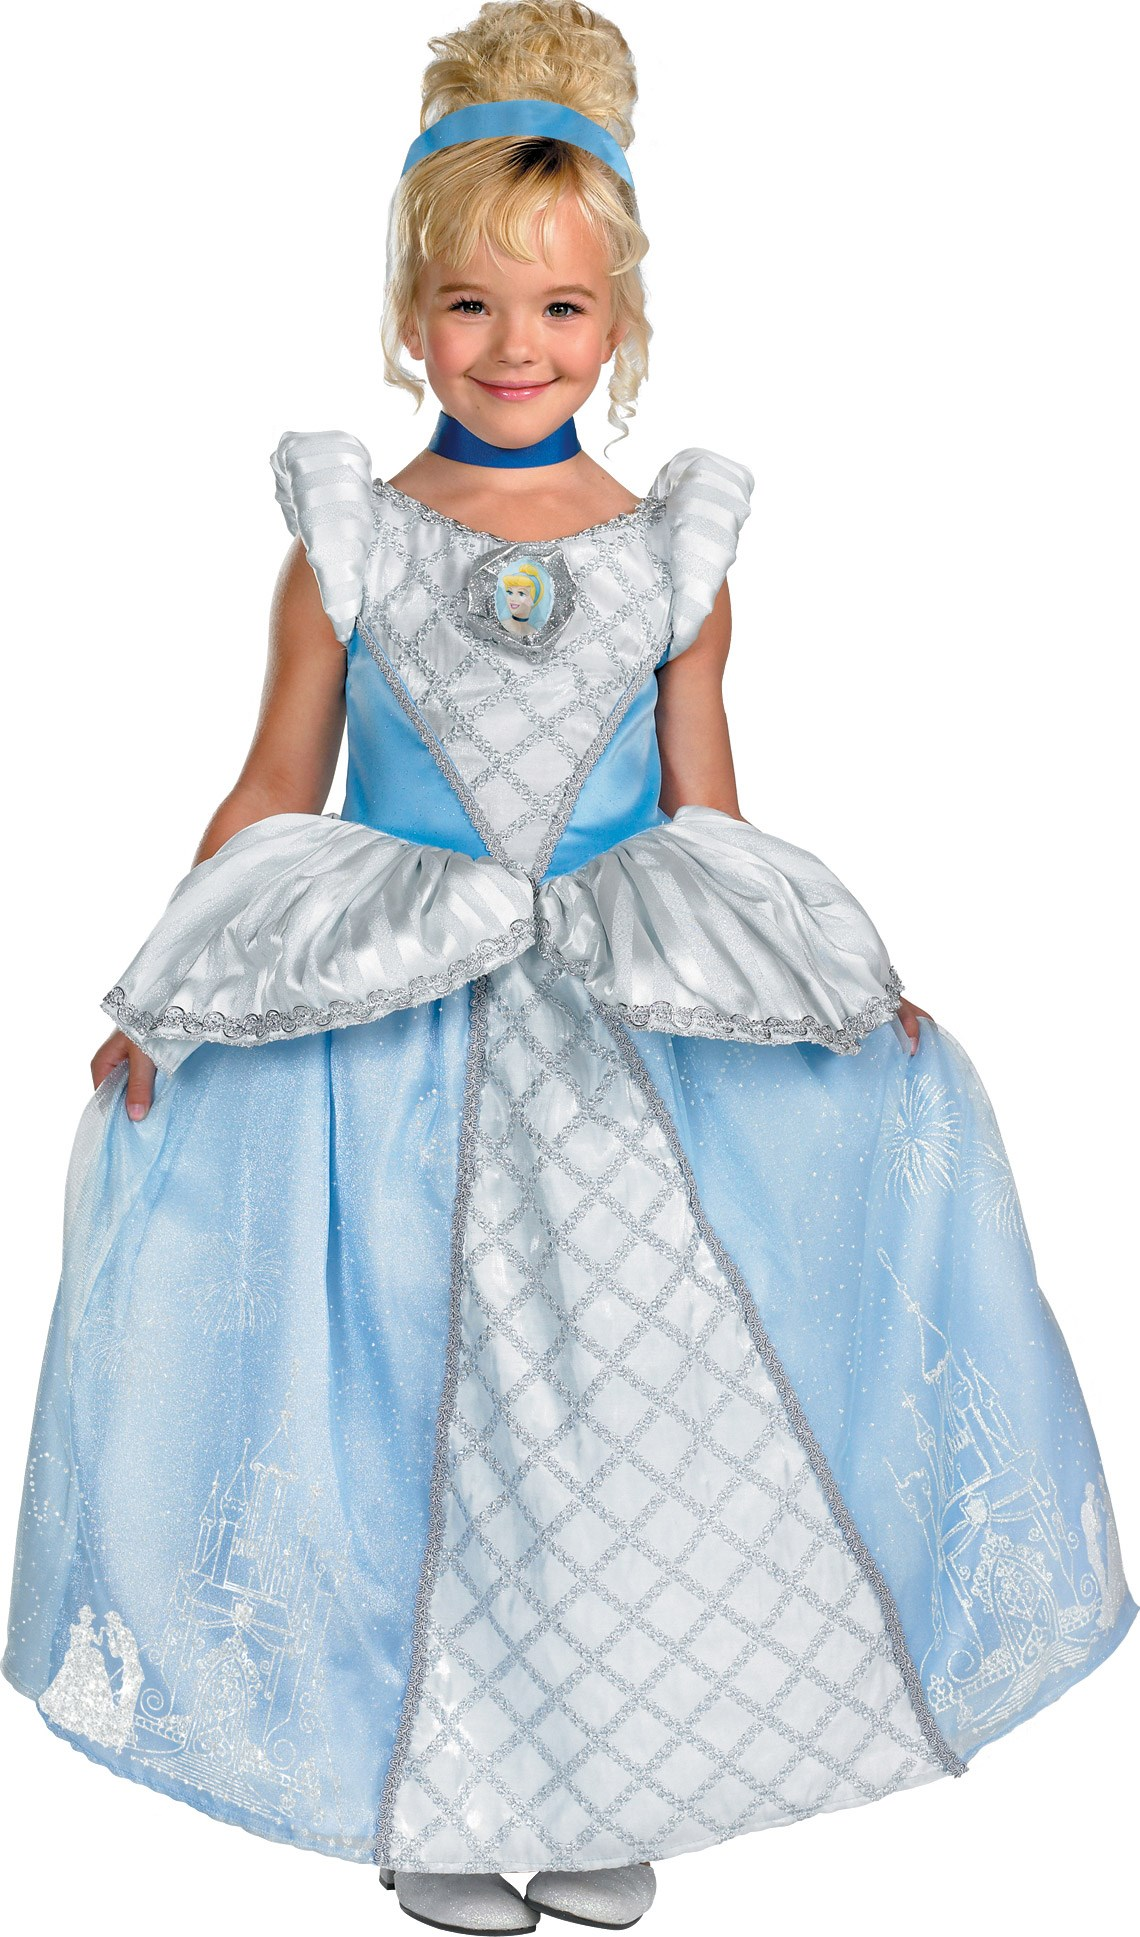 Storybook Cinderella Prestige Toddler / Child Costume Toddler (3-4T)